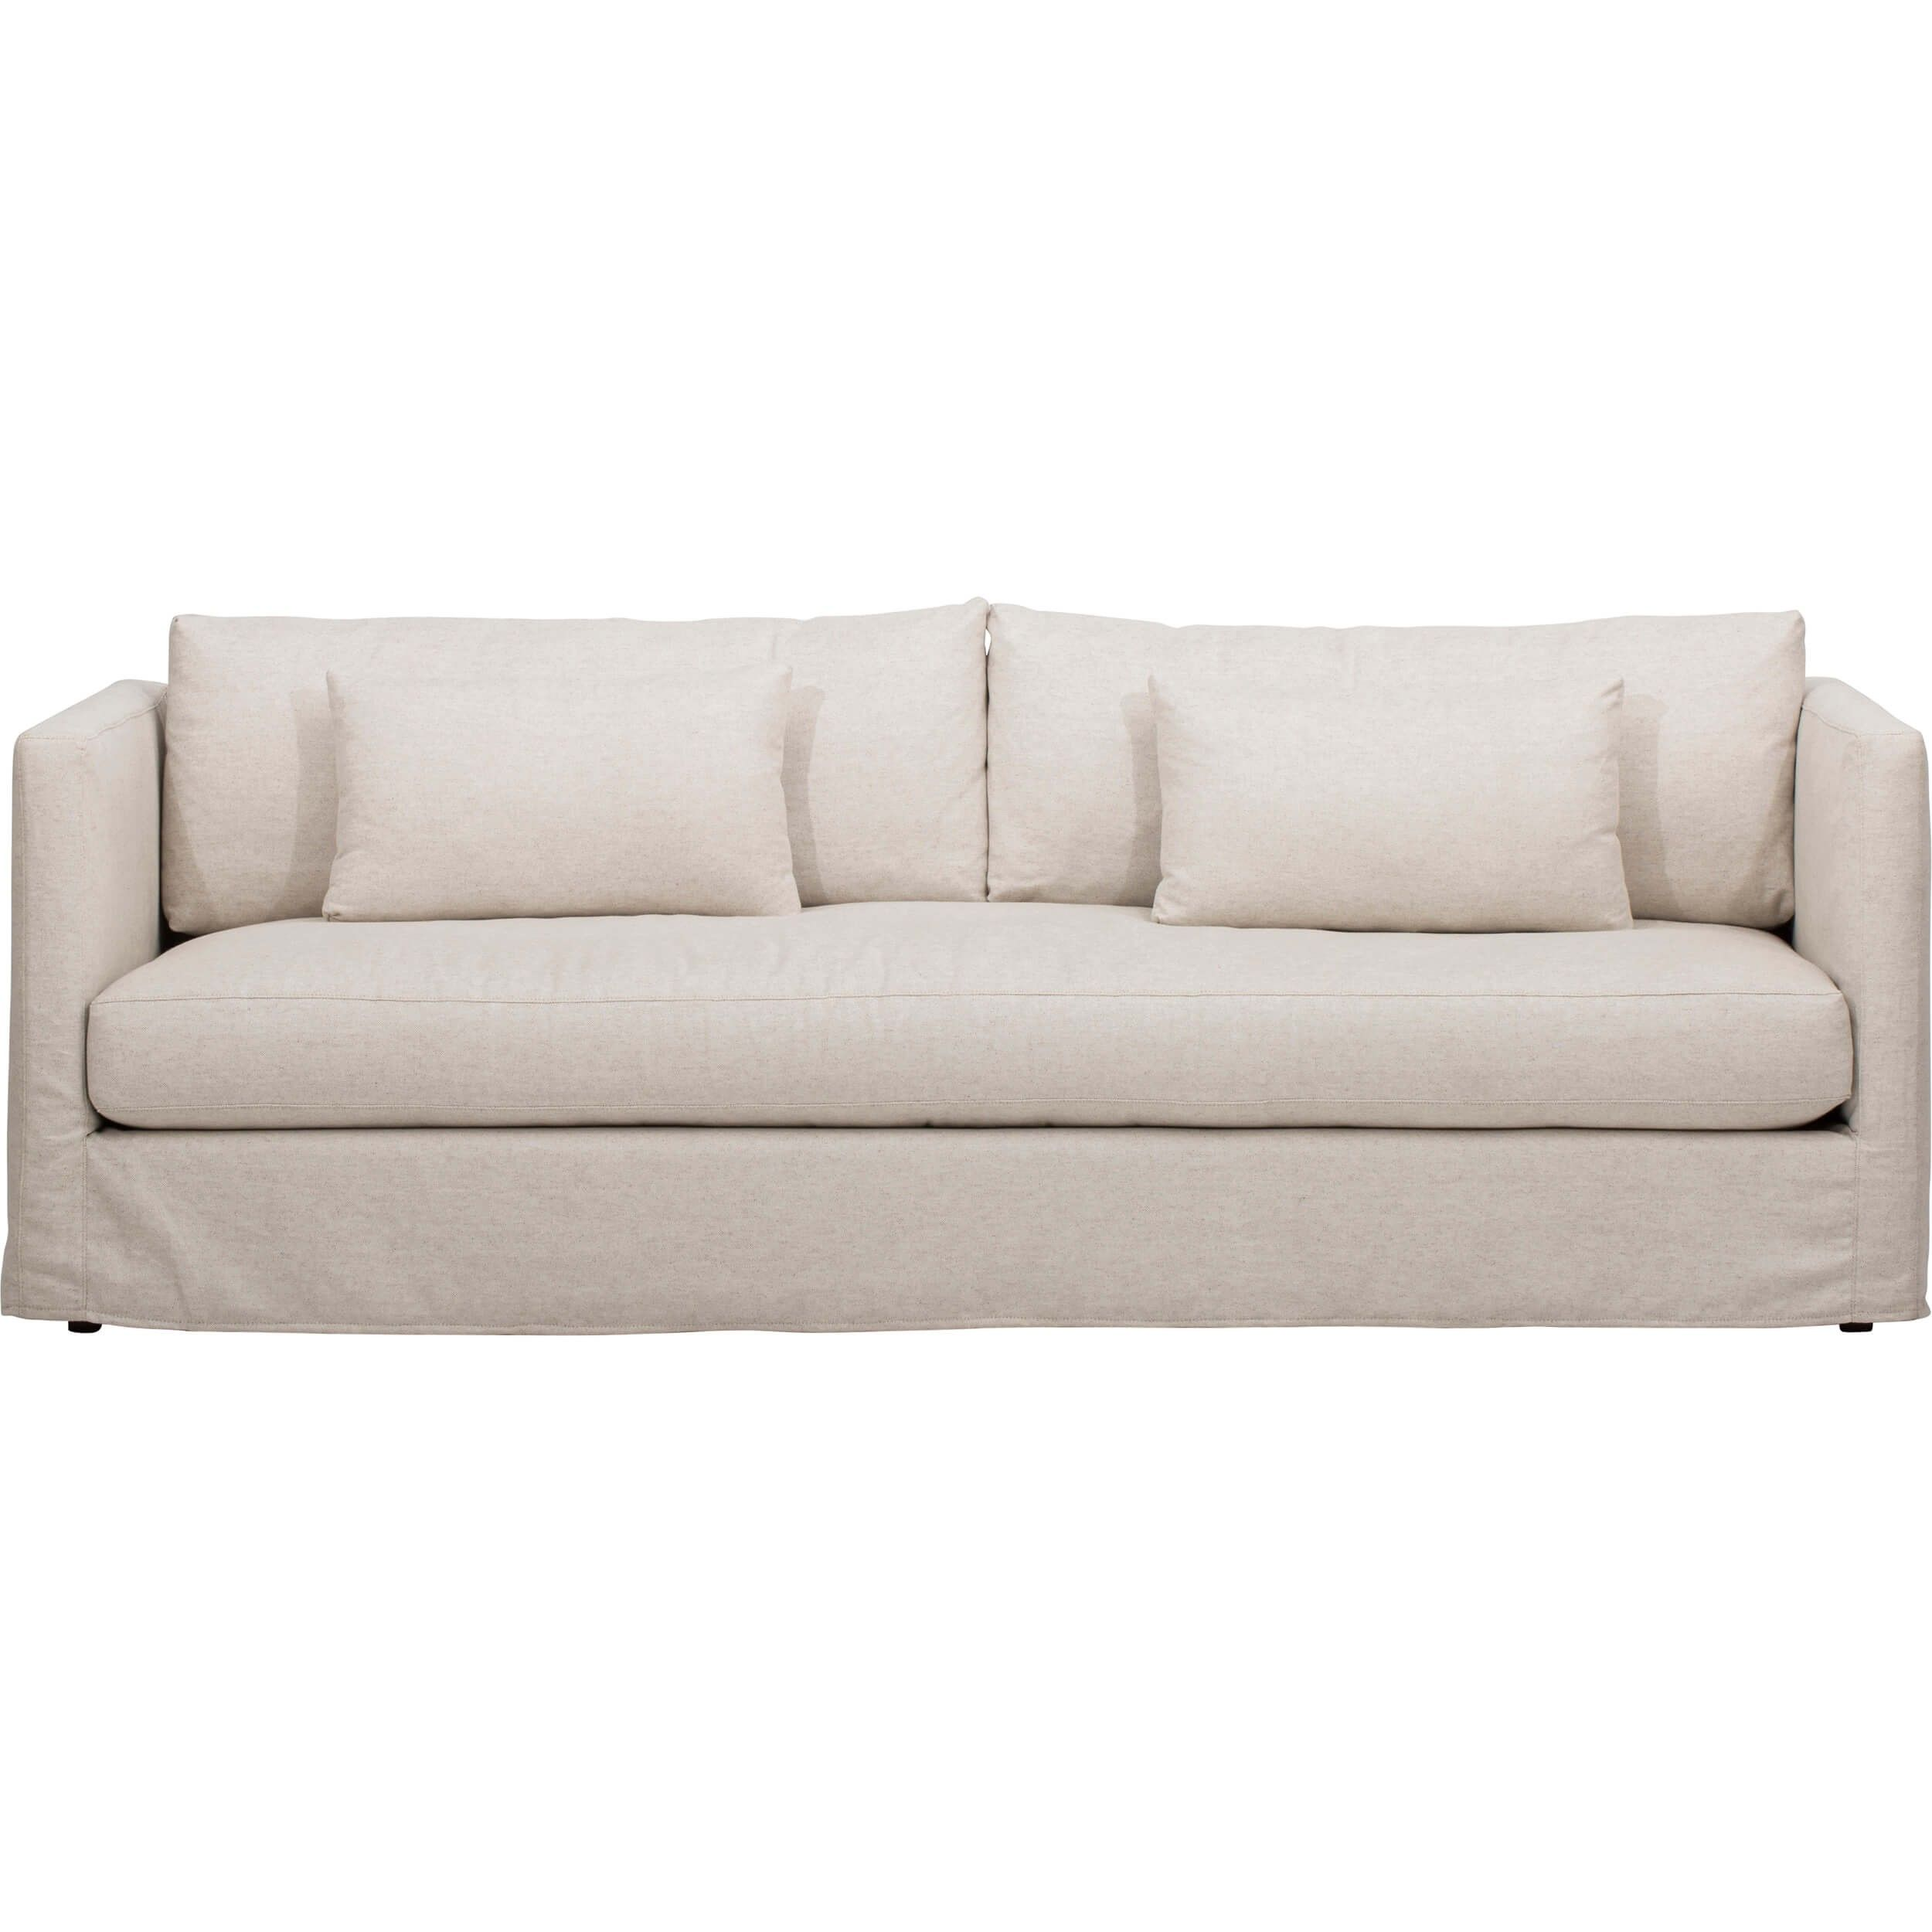 Lucinda Grand Slipcover Sofa, Duet Natural